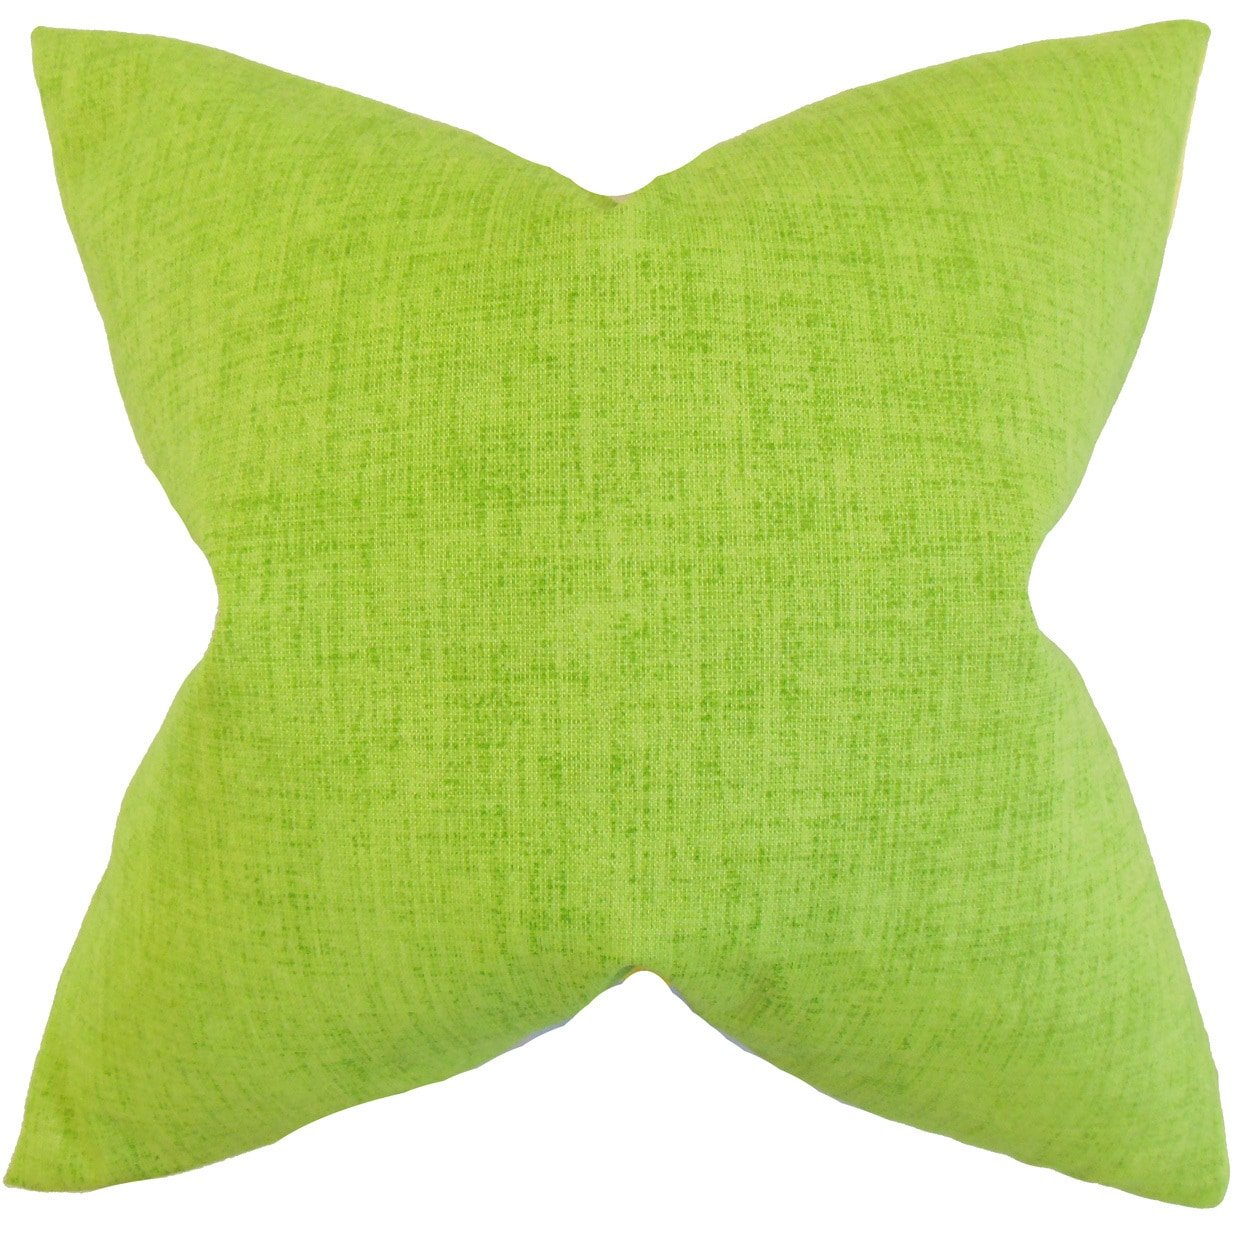 The Pillow Collection Leda Solid Lime Down Filled Throw Pillow